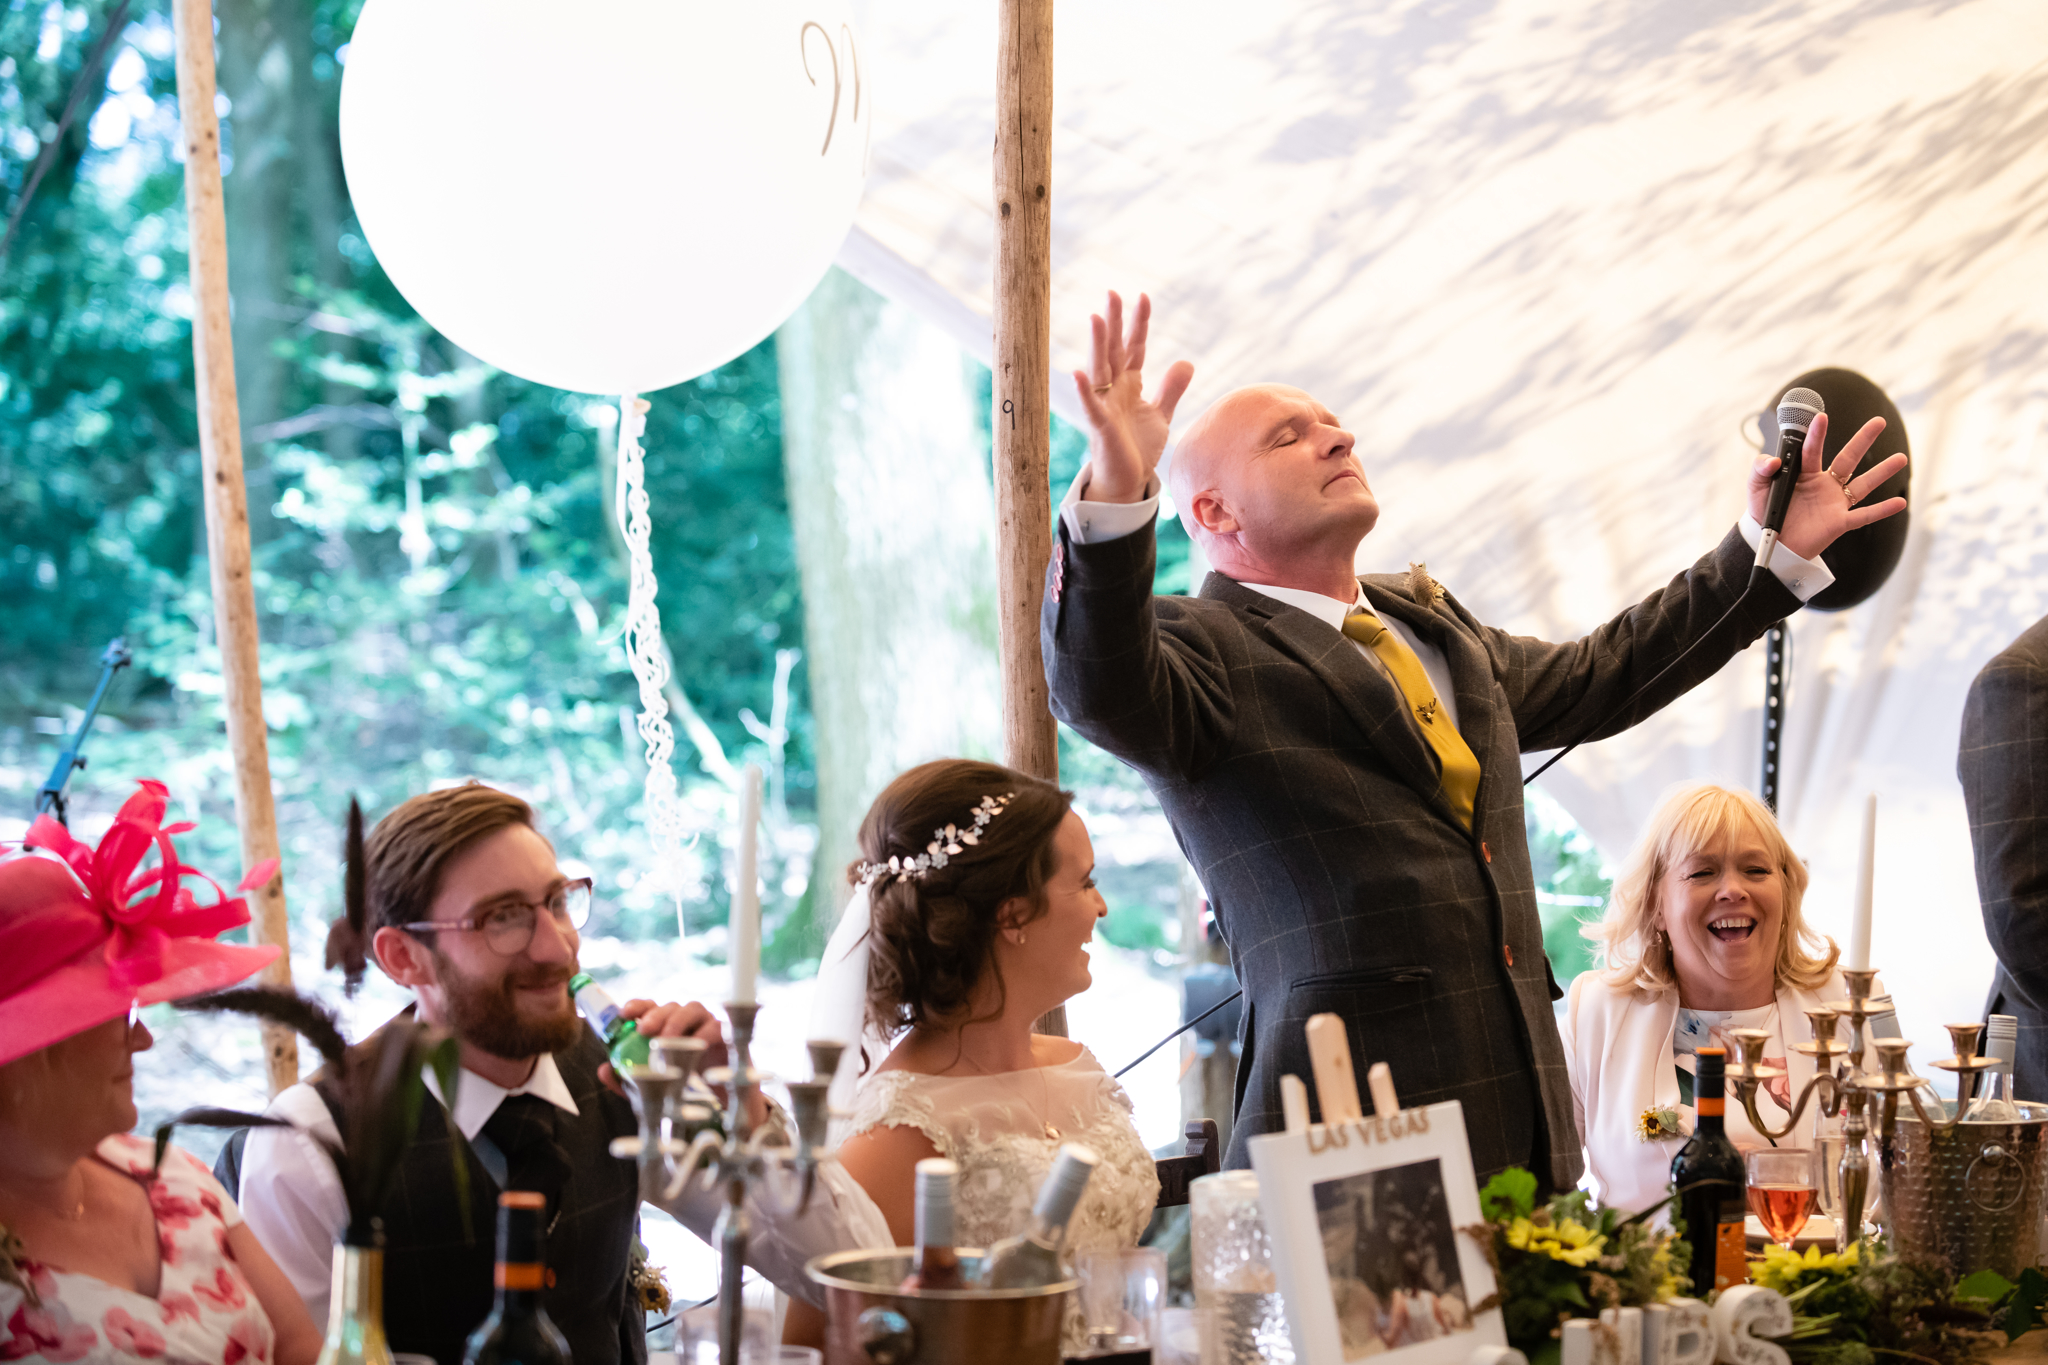 The father of the bride controlling the wedding guests cheers